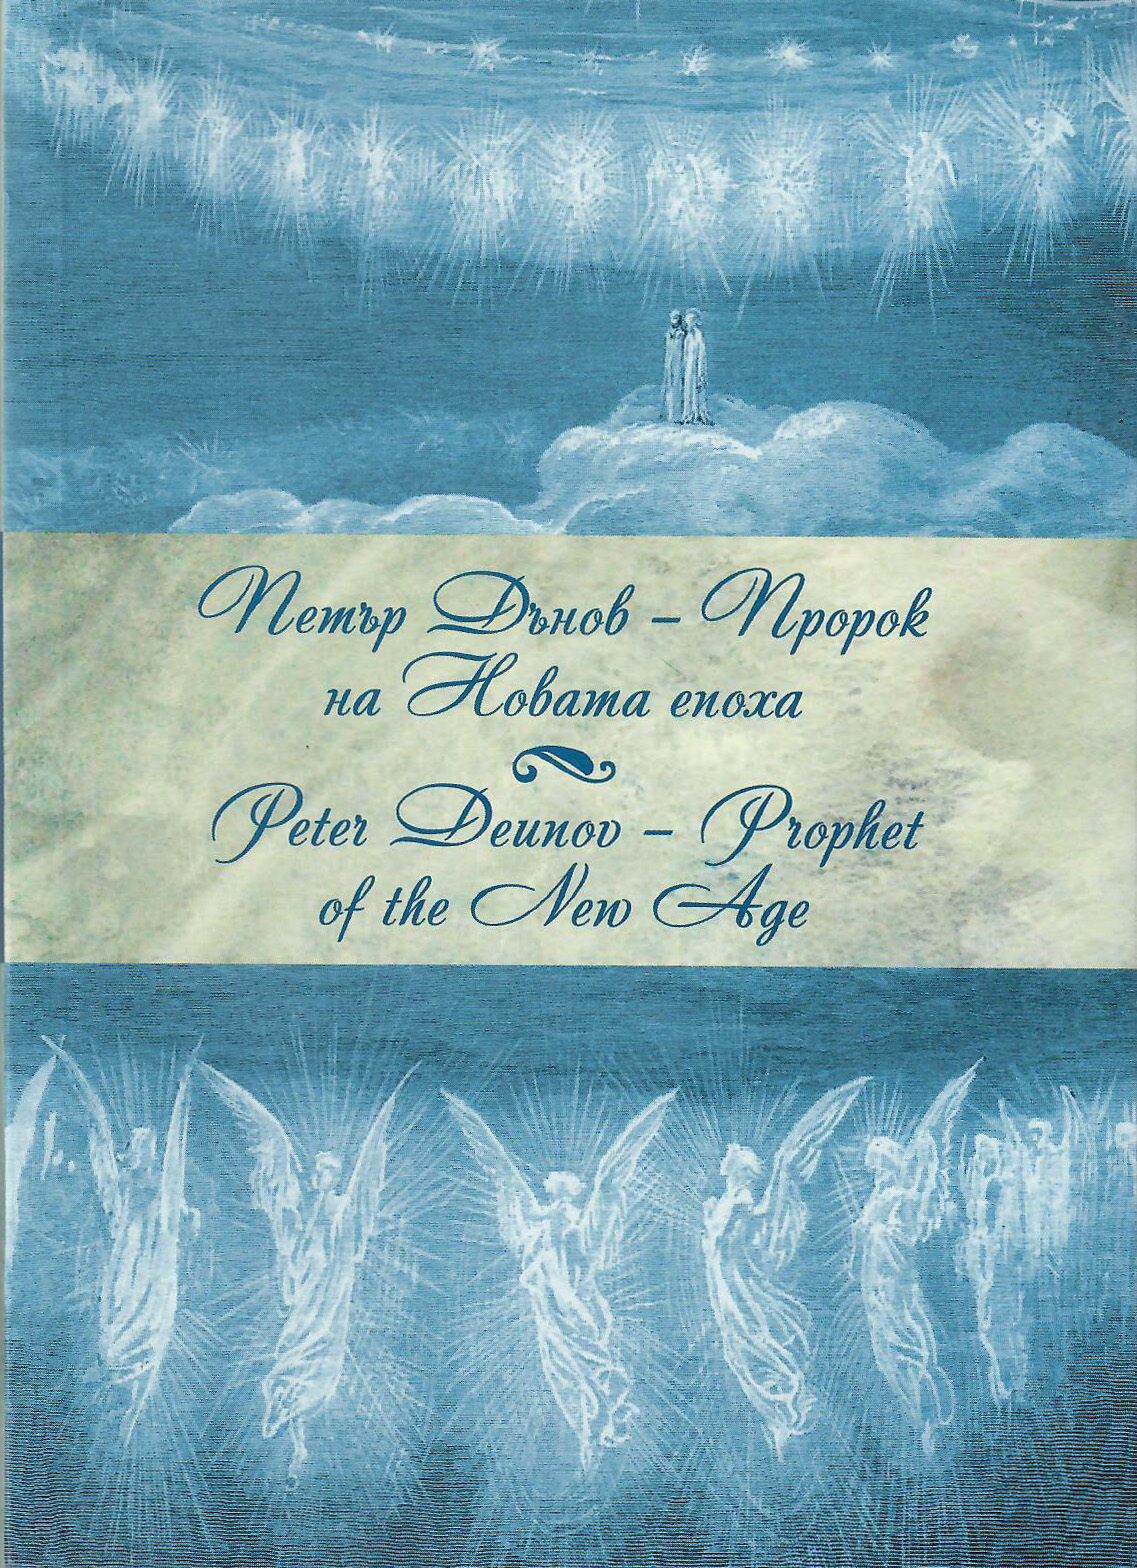 Peter Deunov - Prophet for the New Age